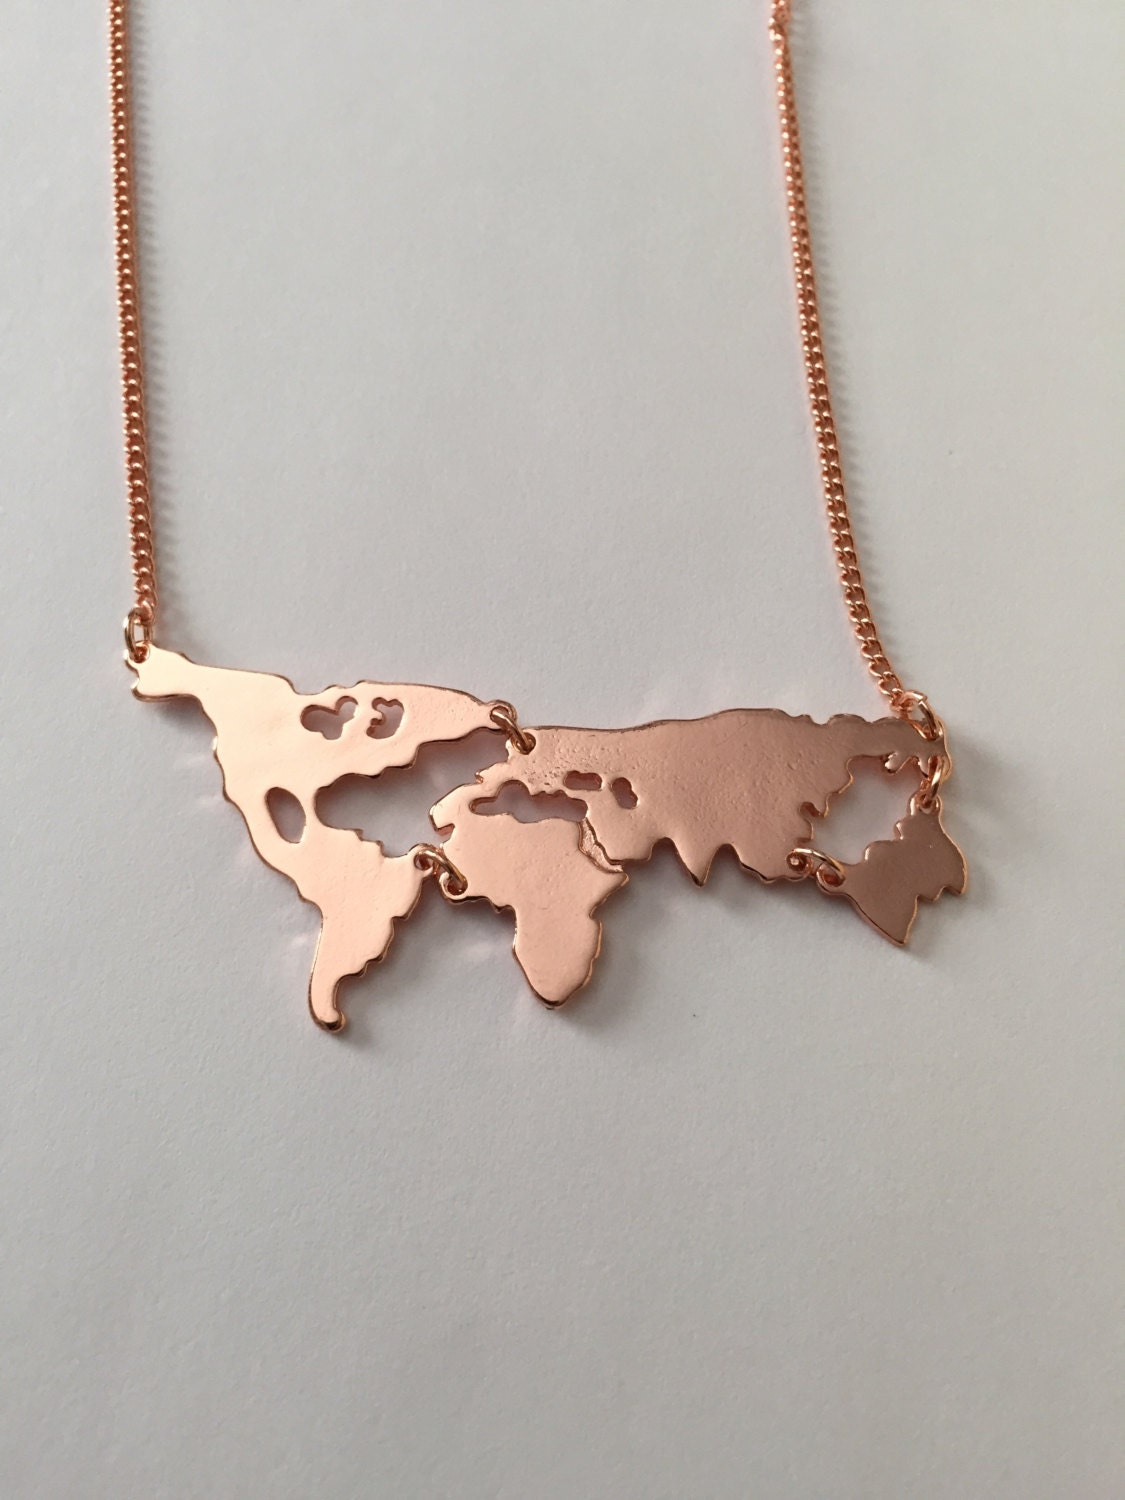 world map necklace world necklace world jewelry world map